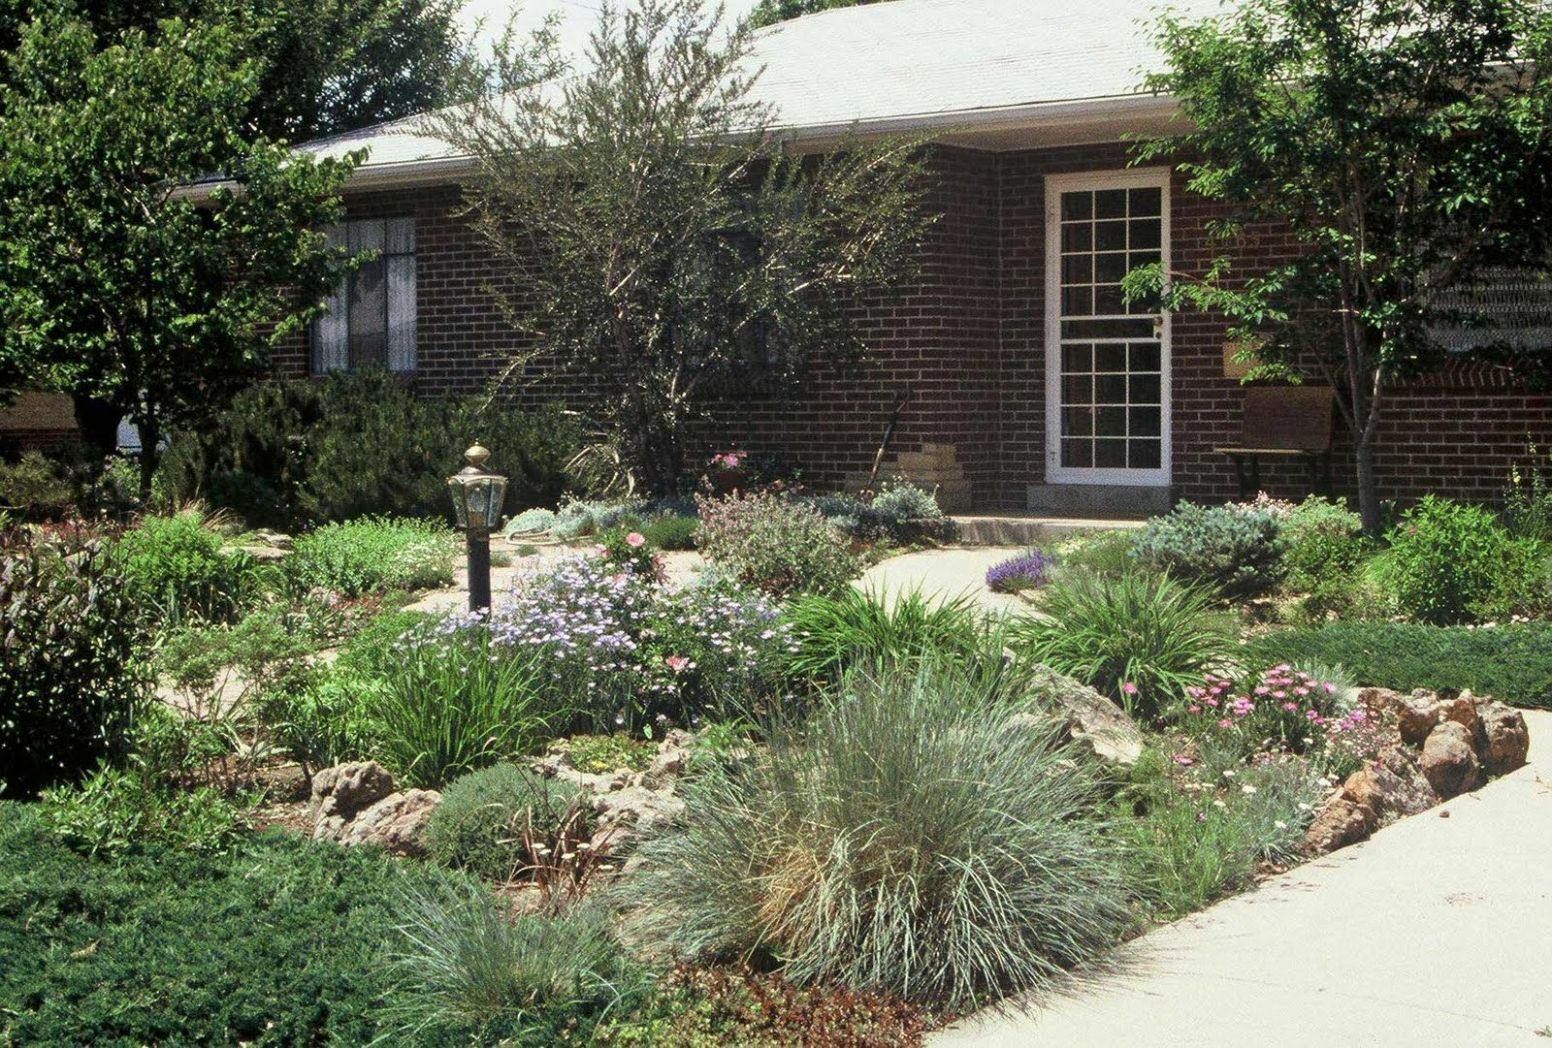 Simple landscaping ideas for front yards Backyard Ideas Without ..